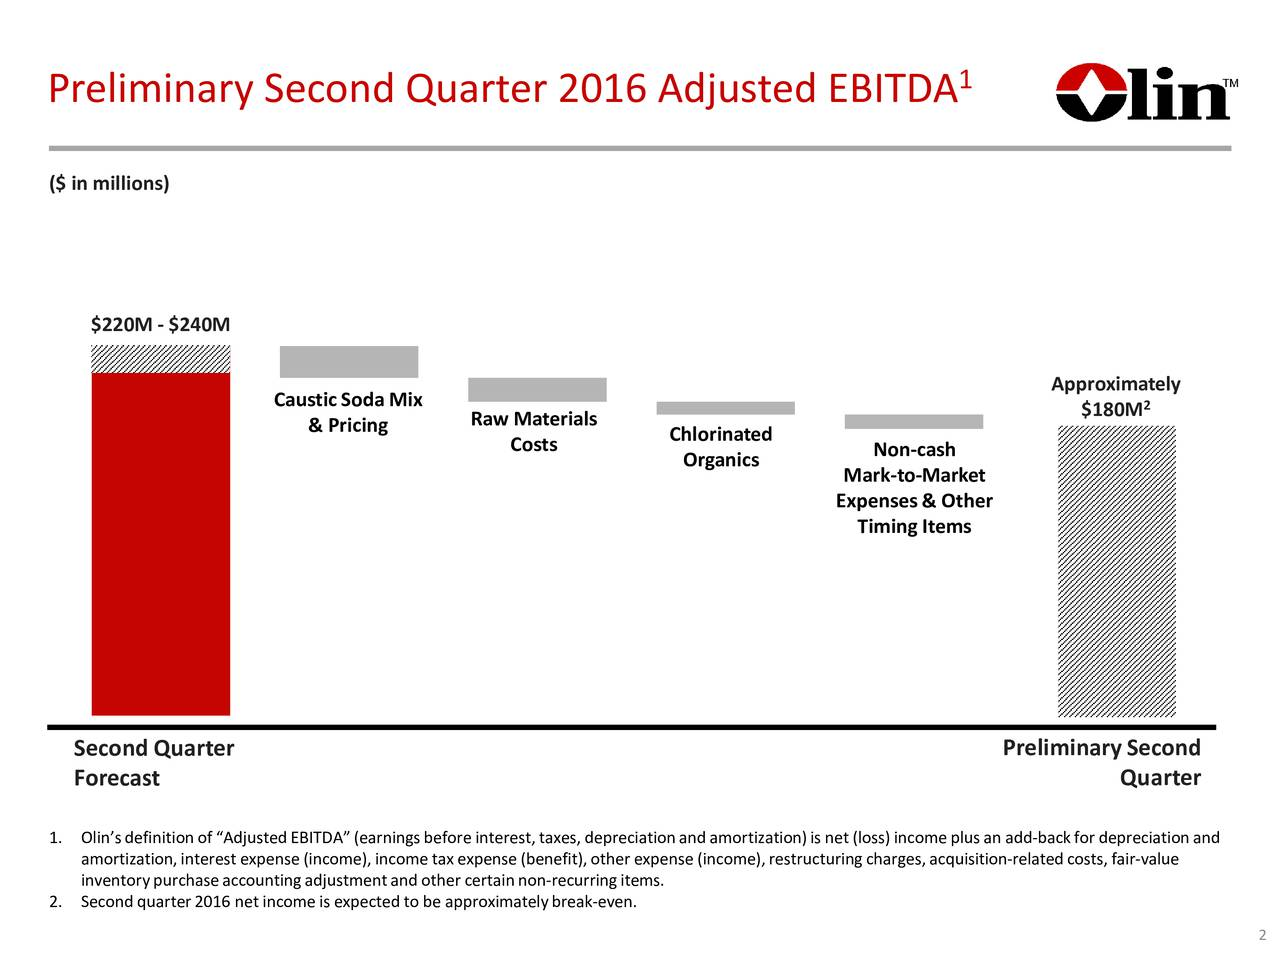 Preliminary Second Quarter 2016 Adjusted EBITDA ($ in millions) $220M - $240M Caustic Soda Mix Approximately Raw Materials $180M 2 & Pricing Chlorinated Costs Organics Non-cash Mark-to-Market Expenses & Other Timing Items Second Quarter Preliminary Second Forecast Quarter 1. Olins definition of Adjusted EBITDA (earnings before interest, taxes, depreciation and amortplus an add-back for depreciation and amortization, interest expense (income), income tax expense (benefit), other expense (income), ressiion-related costs, fair-value inventory purchase accounting adjustment and other certain non-recurring items. 2. Second quarter 2016 net income is expected to be approxi-even. break 2